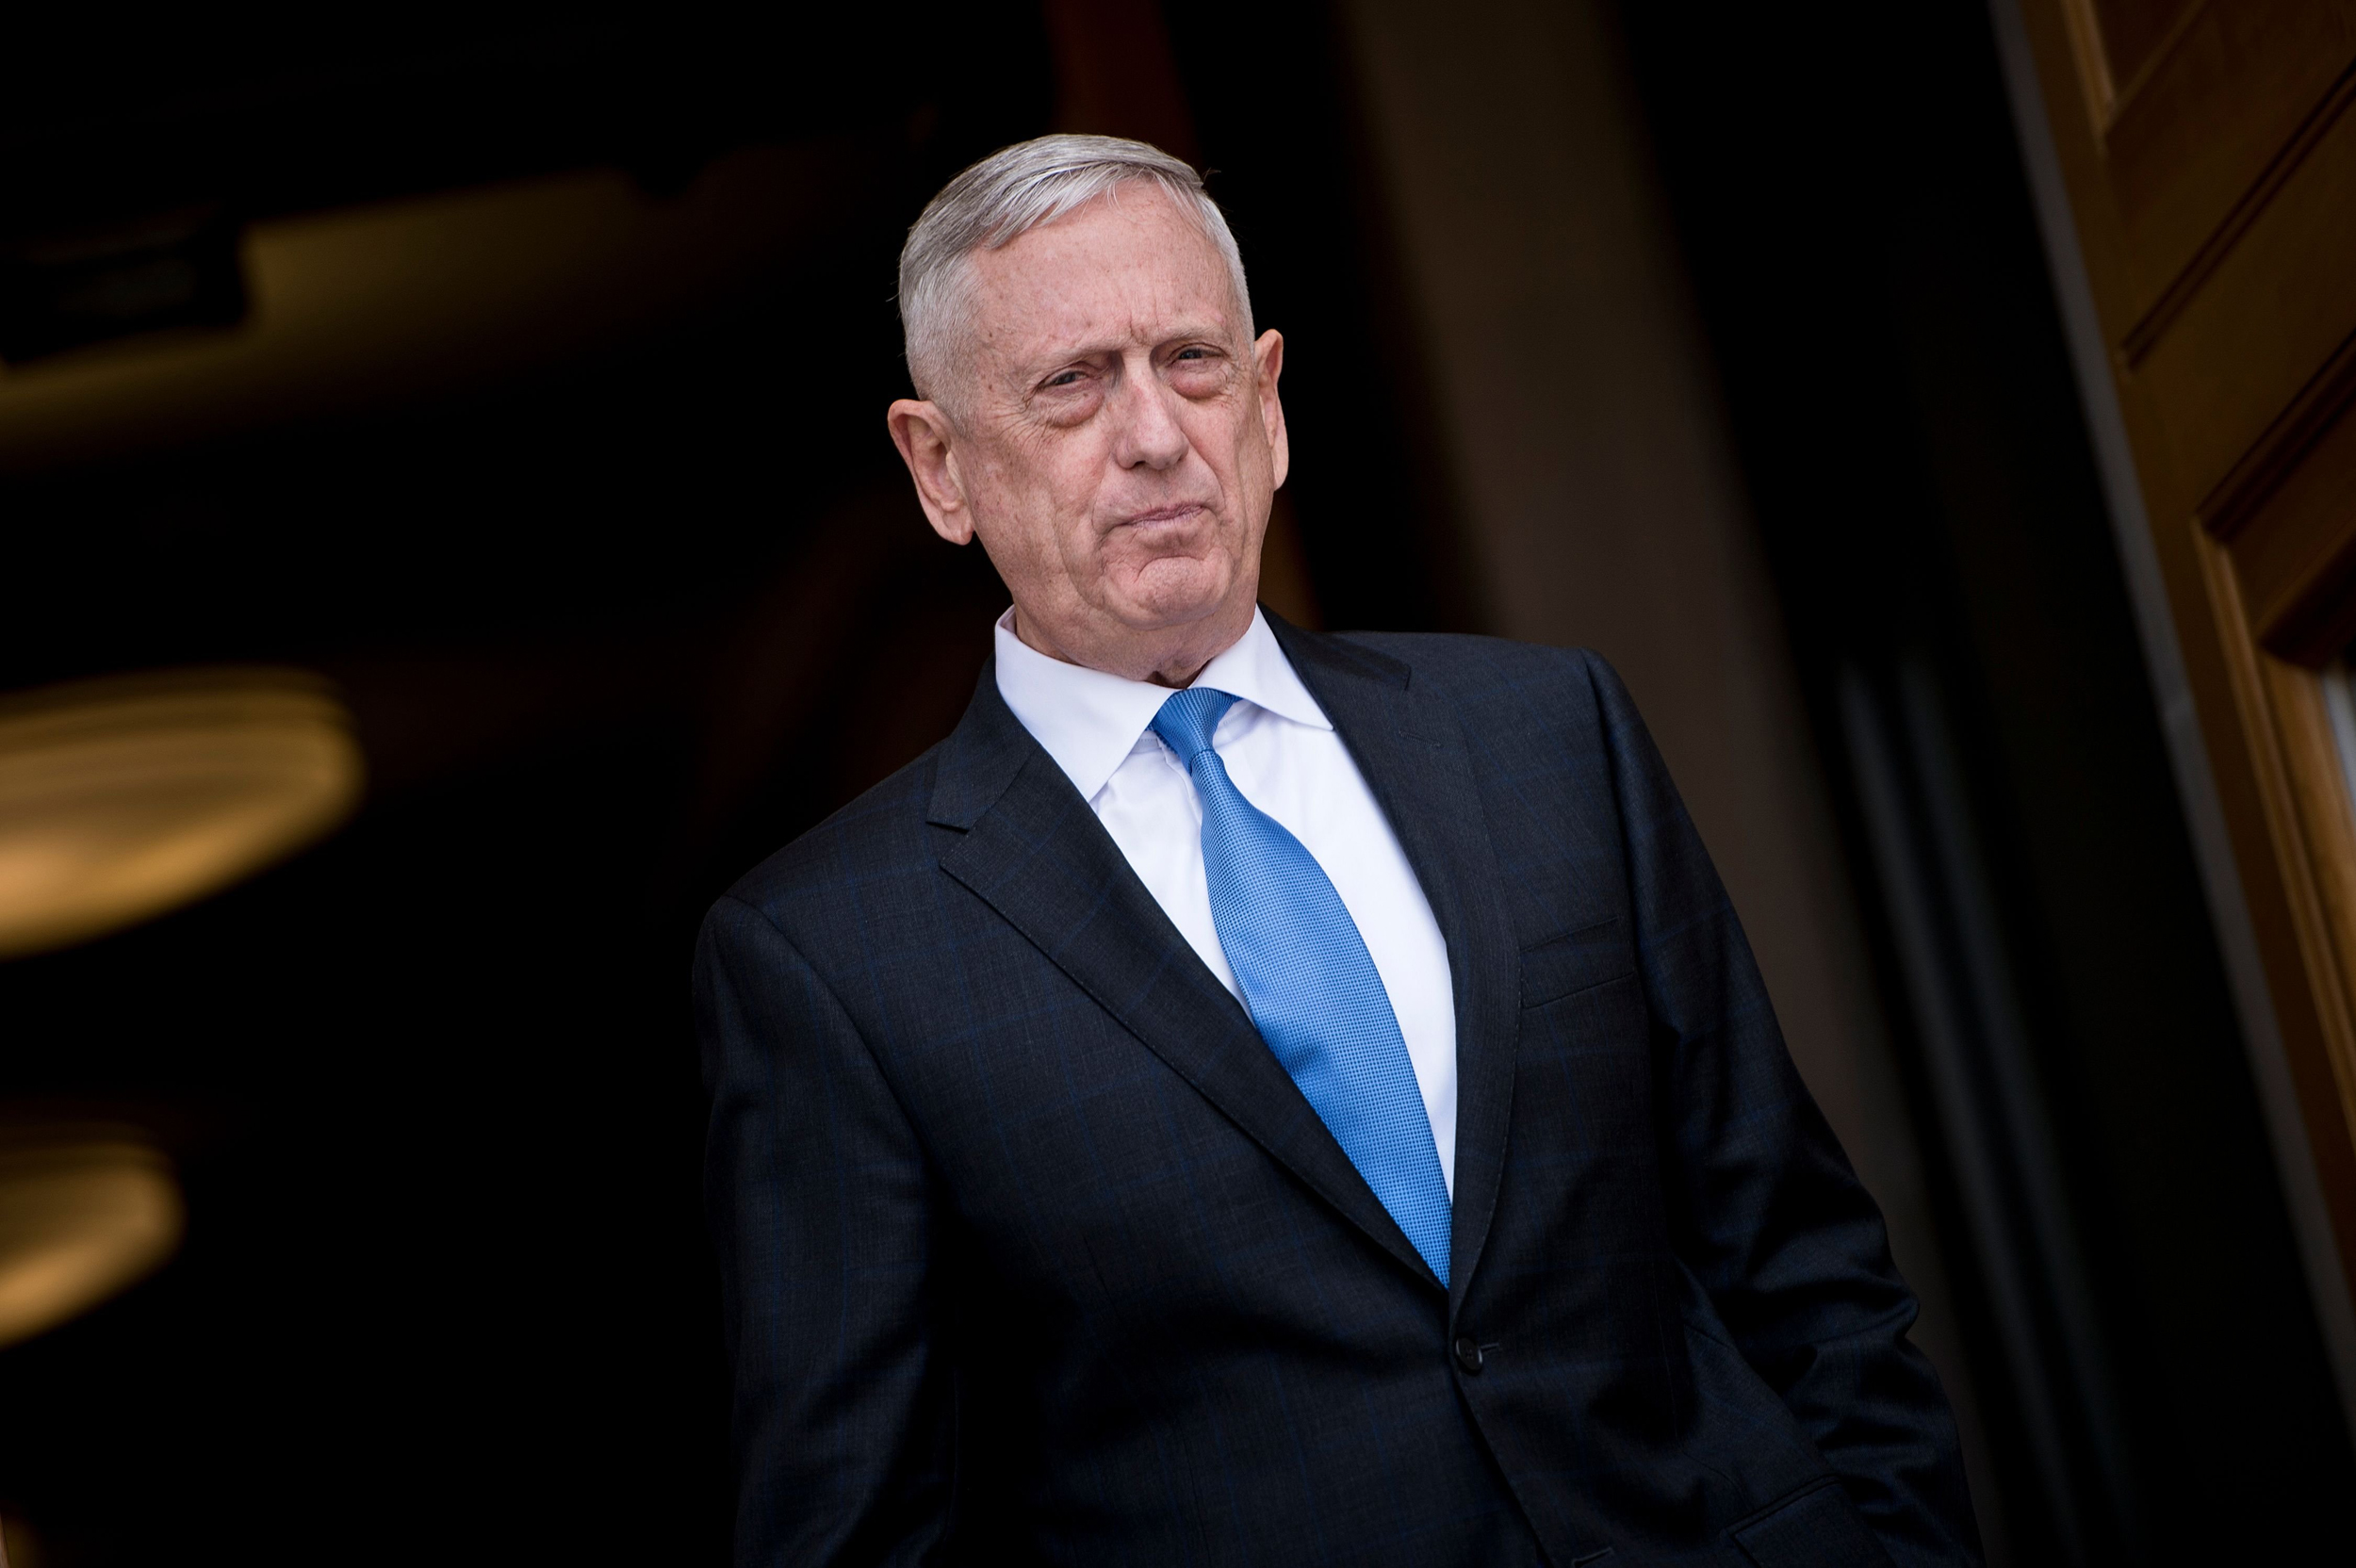 James Mattis testifies he invested $85,000 in Theranos, ended up feeling 'disappointed'